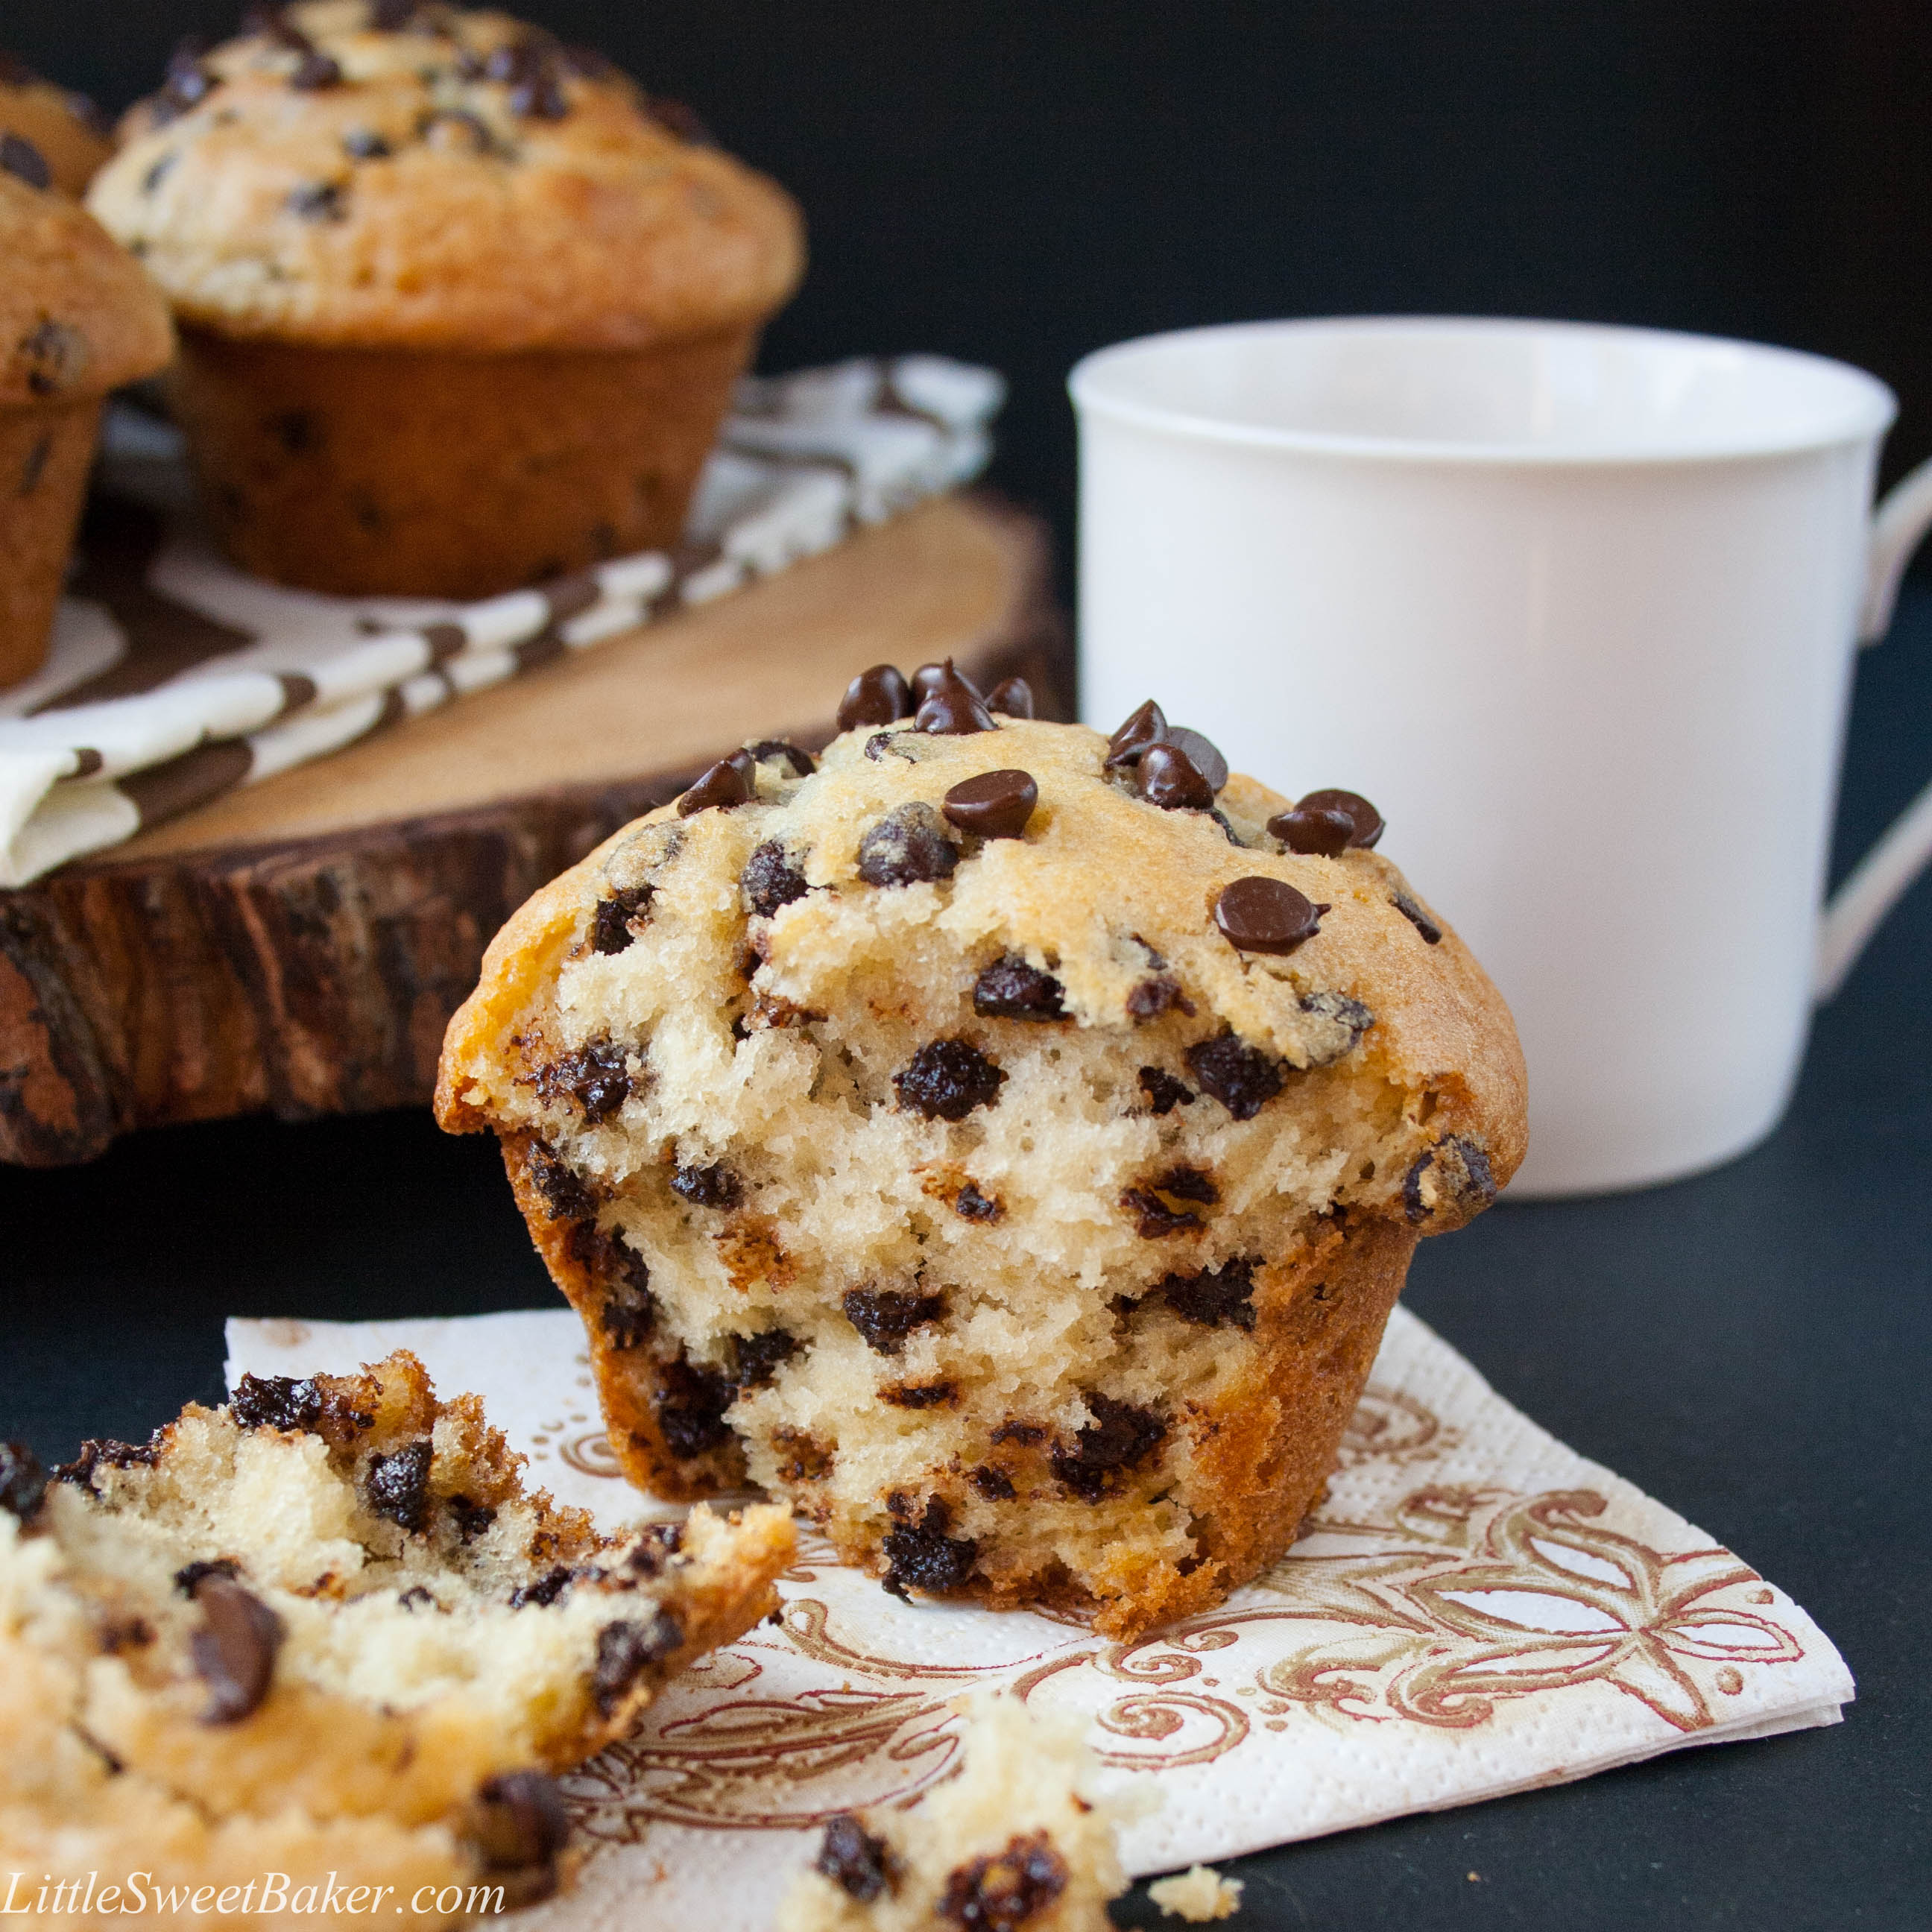 CHIP MUFFINS. A crispy sky-high muffin top, full of chocolate chips ...